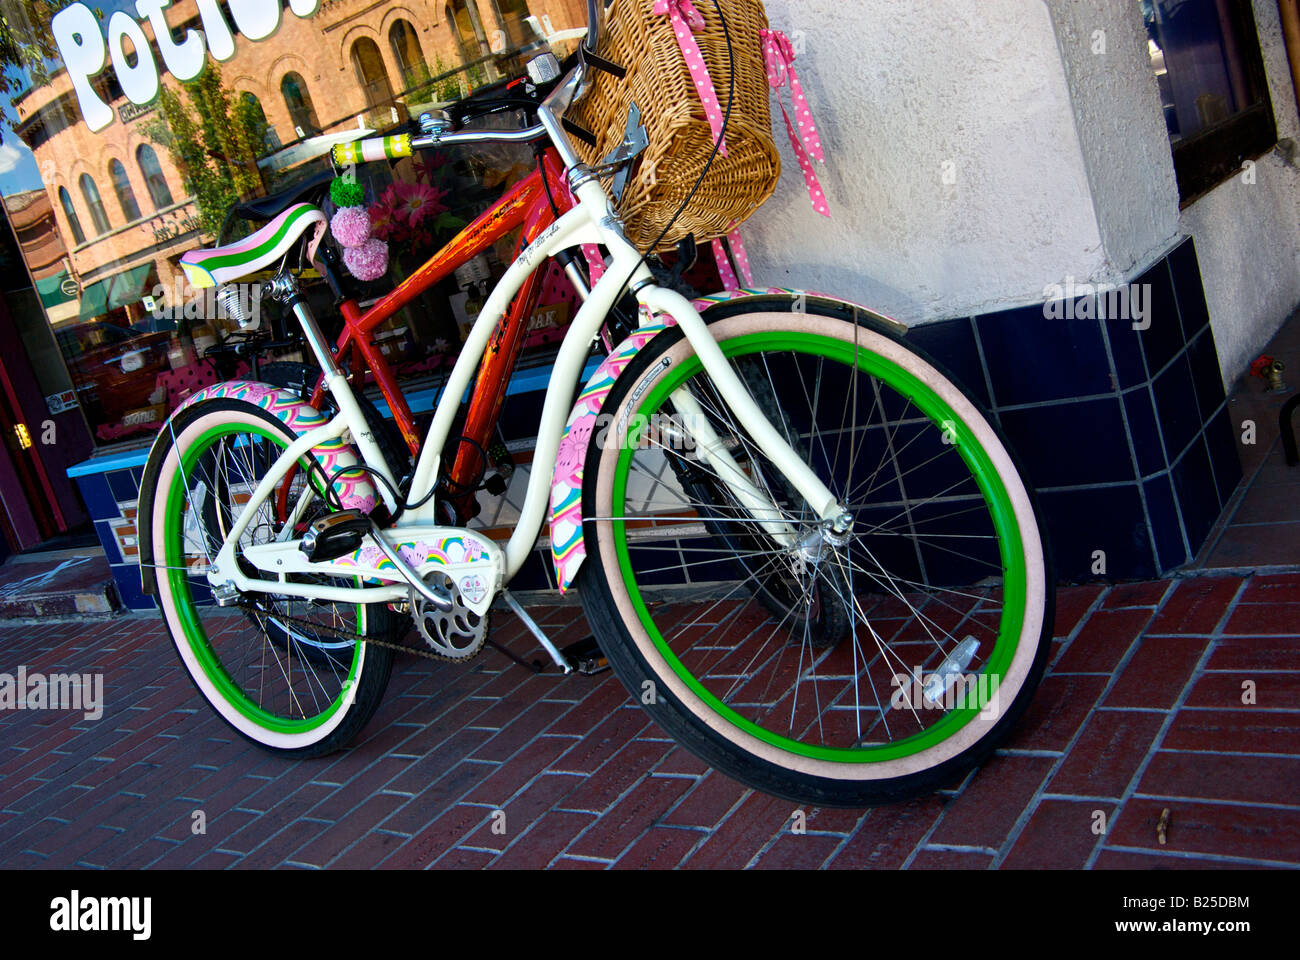 Retro style bicycle in front of store in Sandpoint idaho - Stock Image